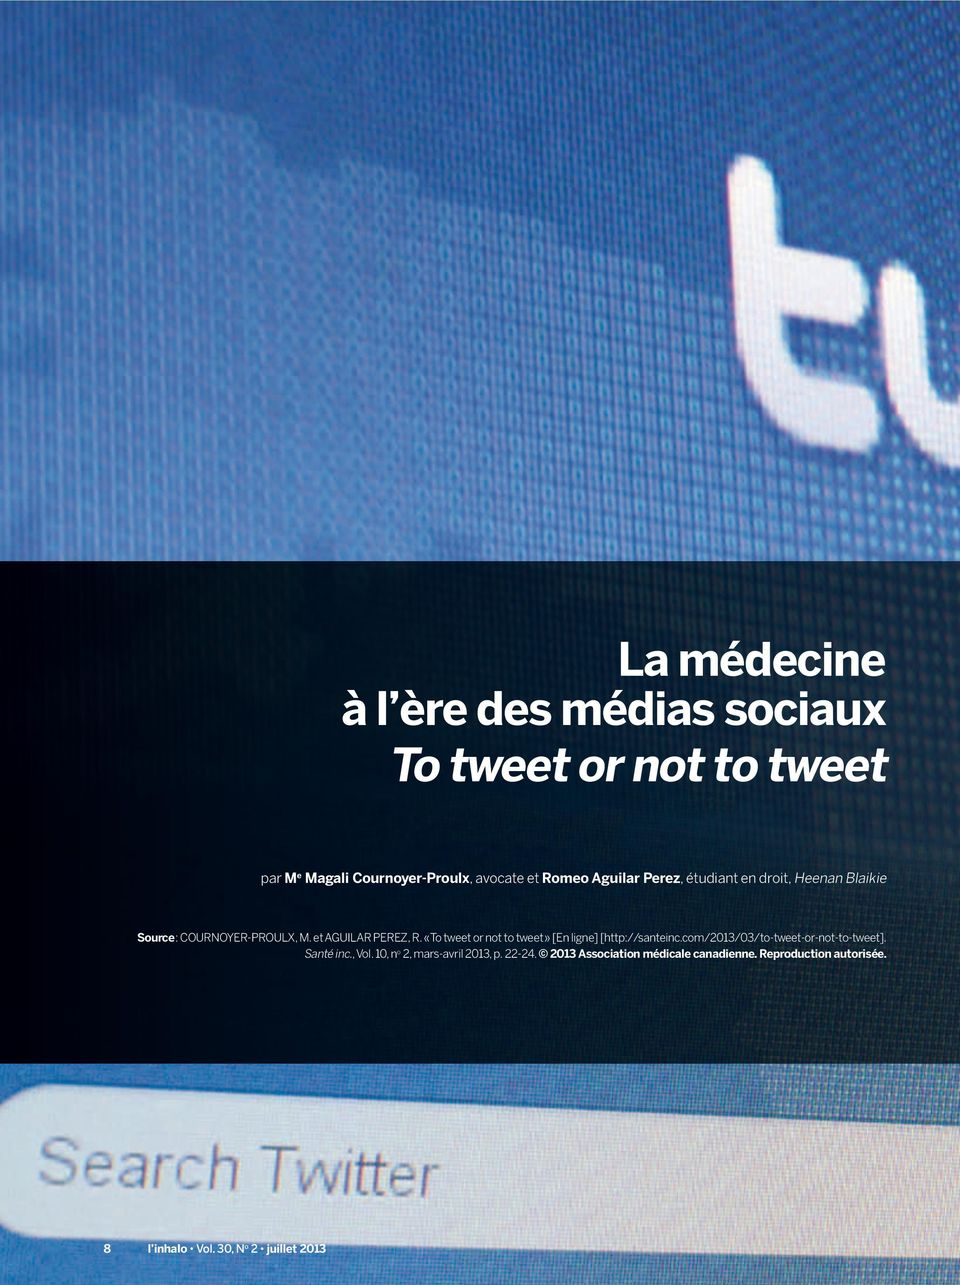 «To tweet or not to tweet» [En ligne] [http://santeinc.com/2013/03/to-tweet-or-not-to-tweet]. Santé inc., Vol.